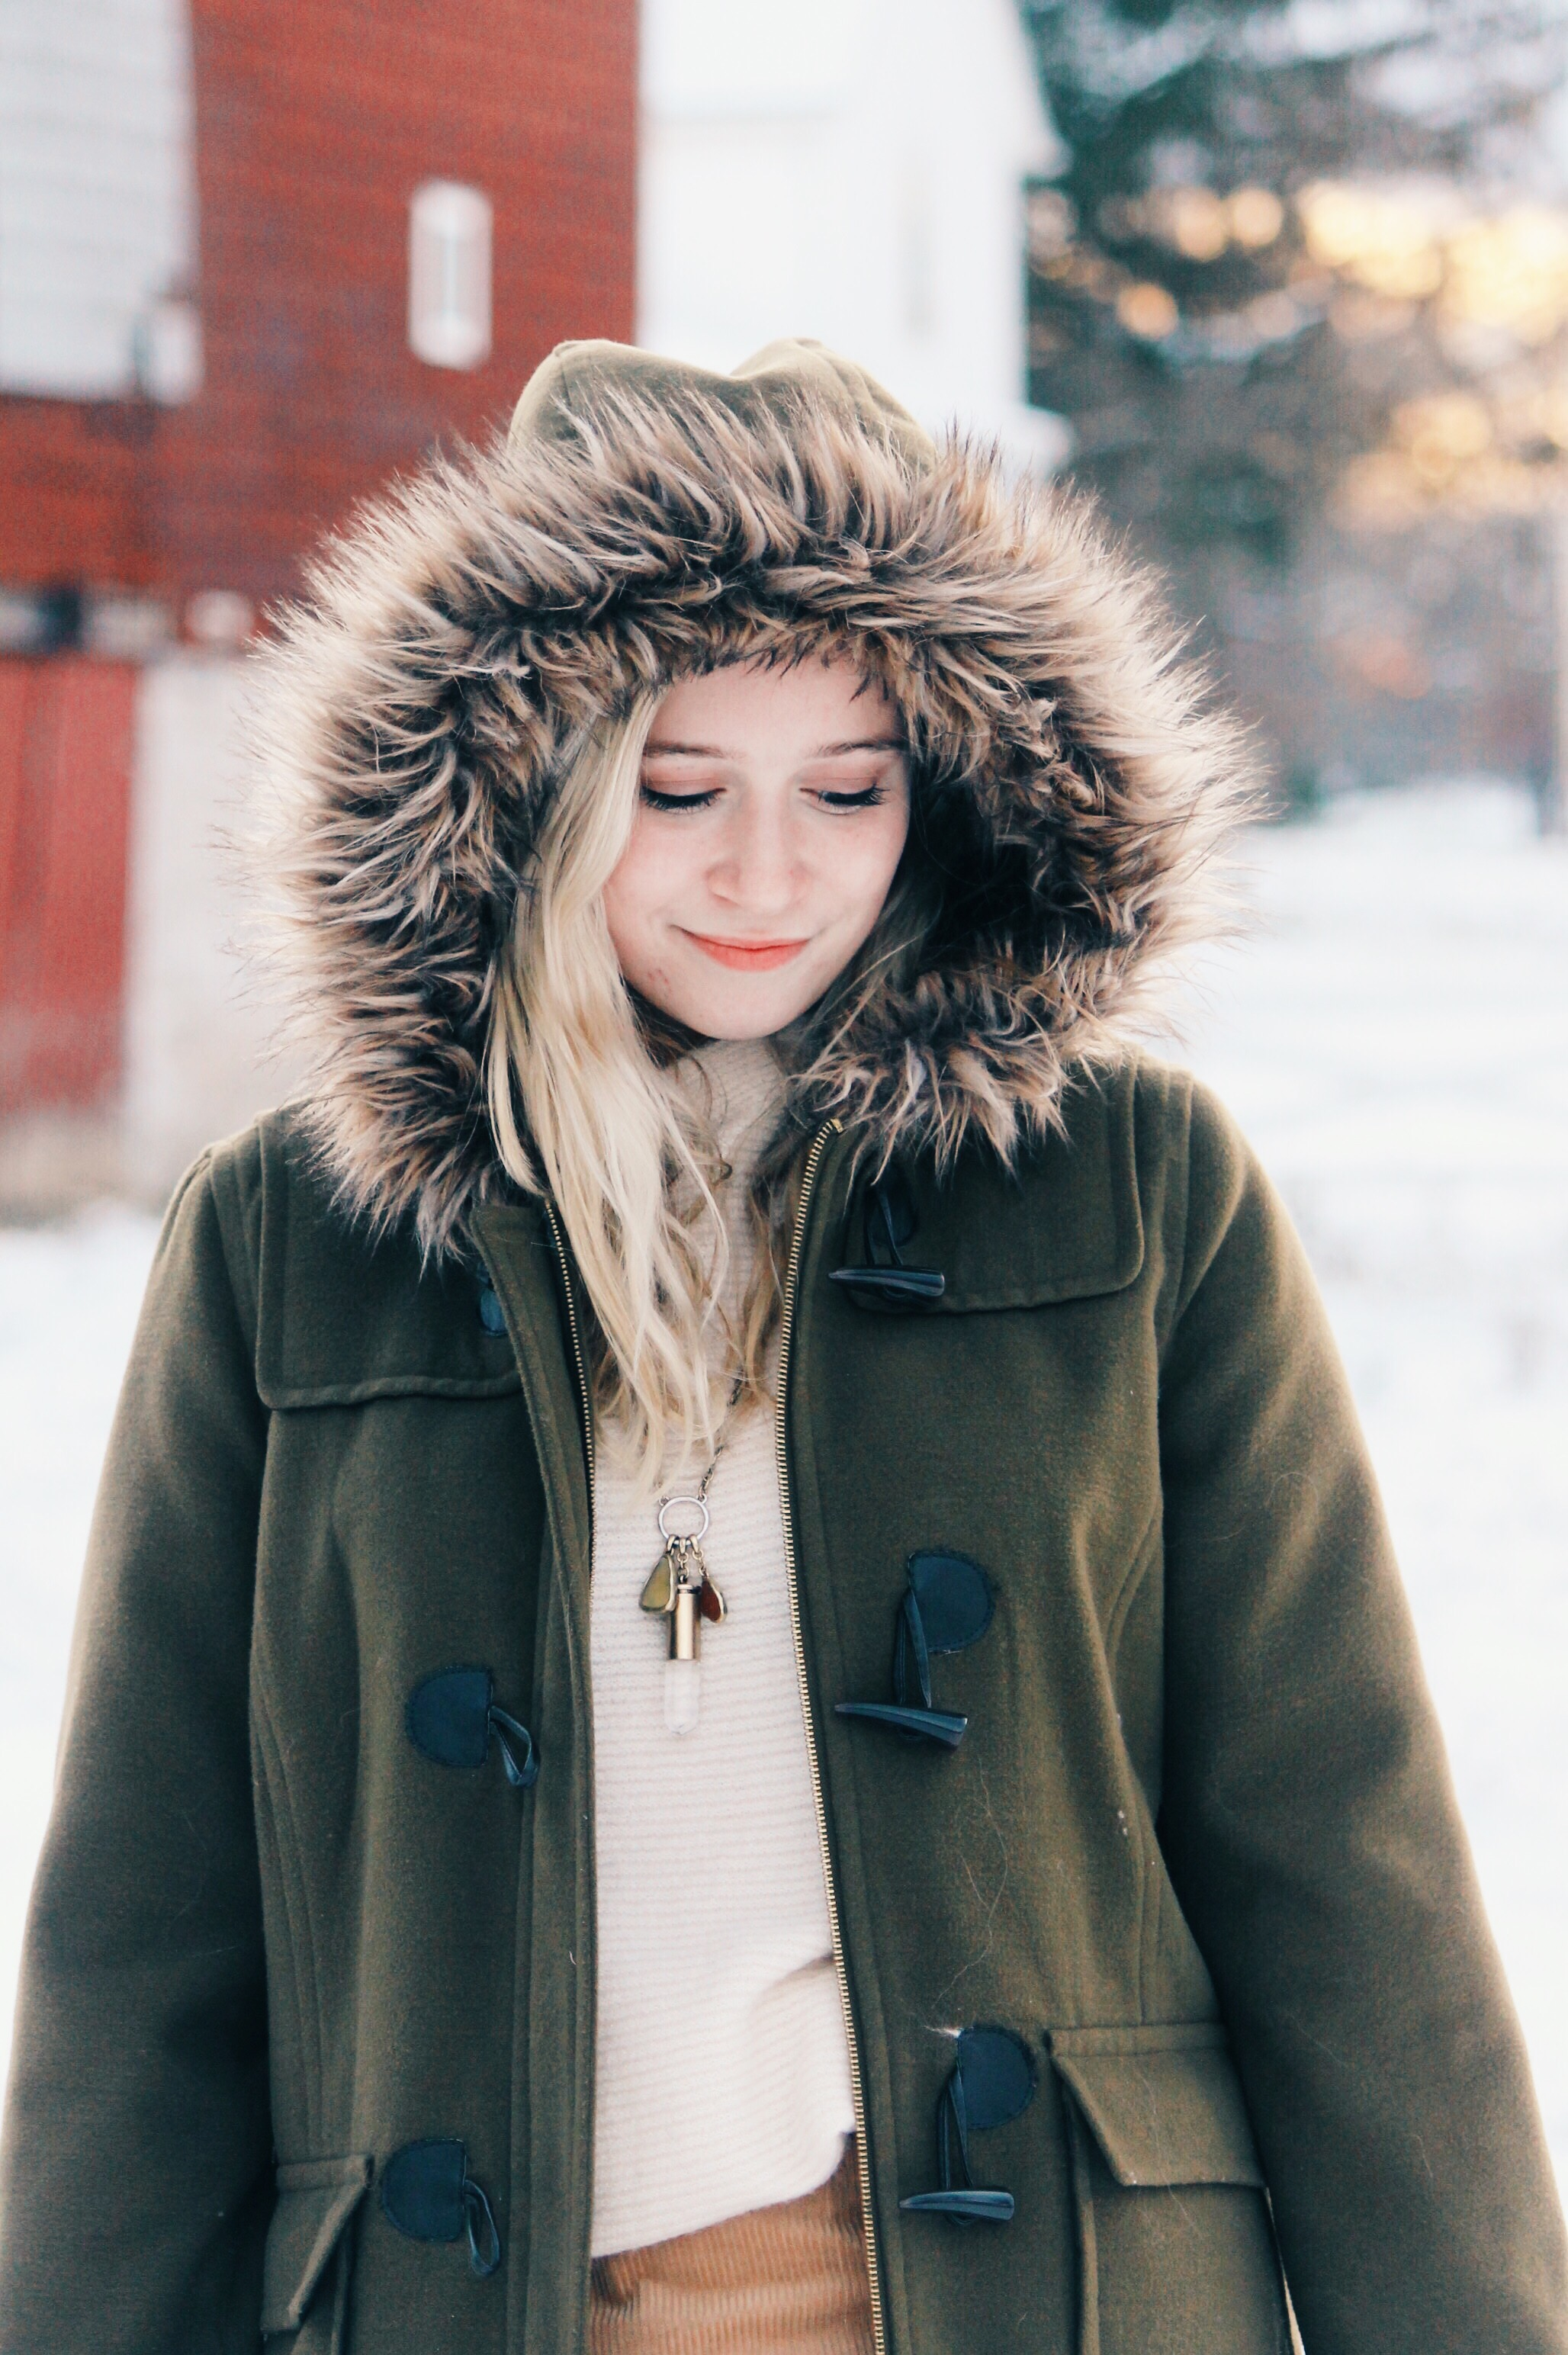 Eskimo Chic + Preparing for Winter Blues